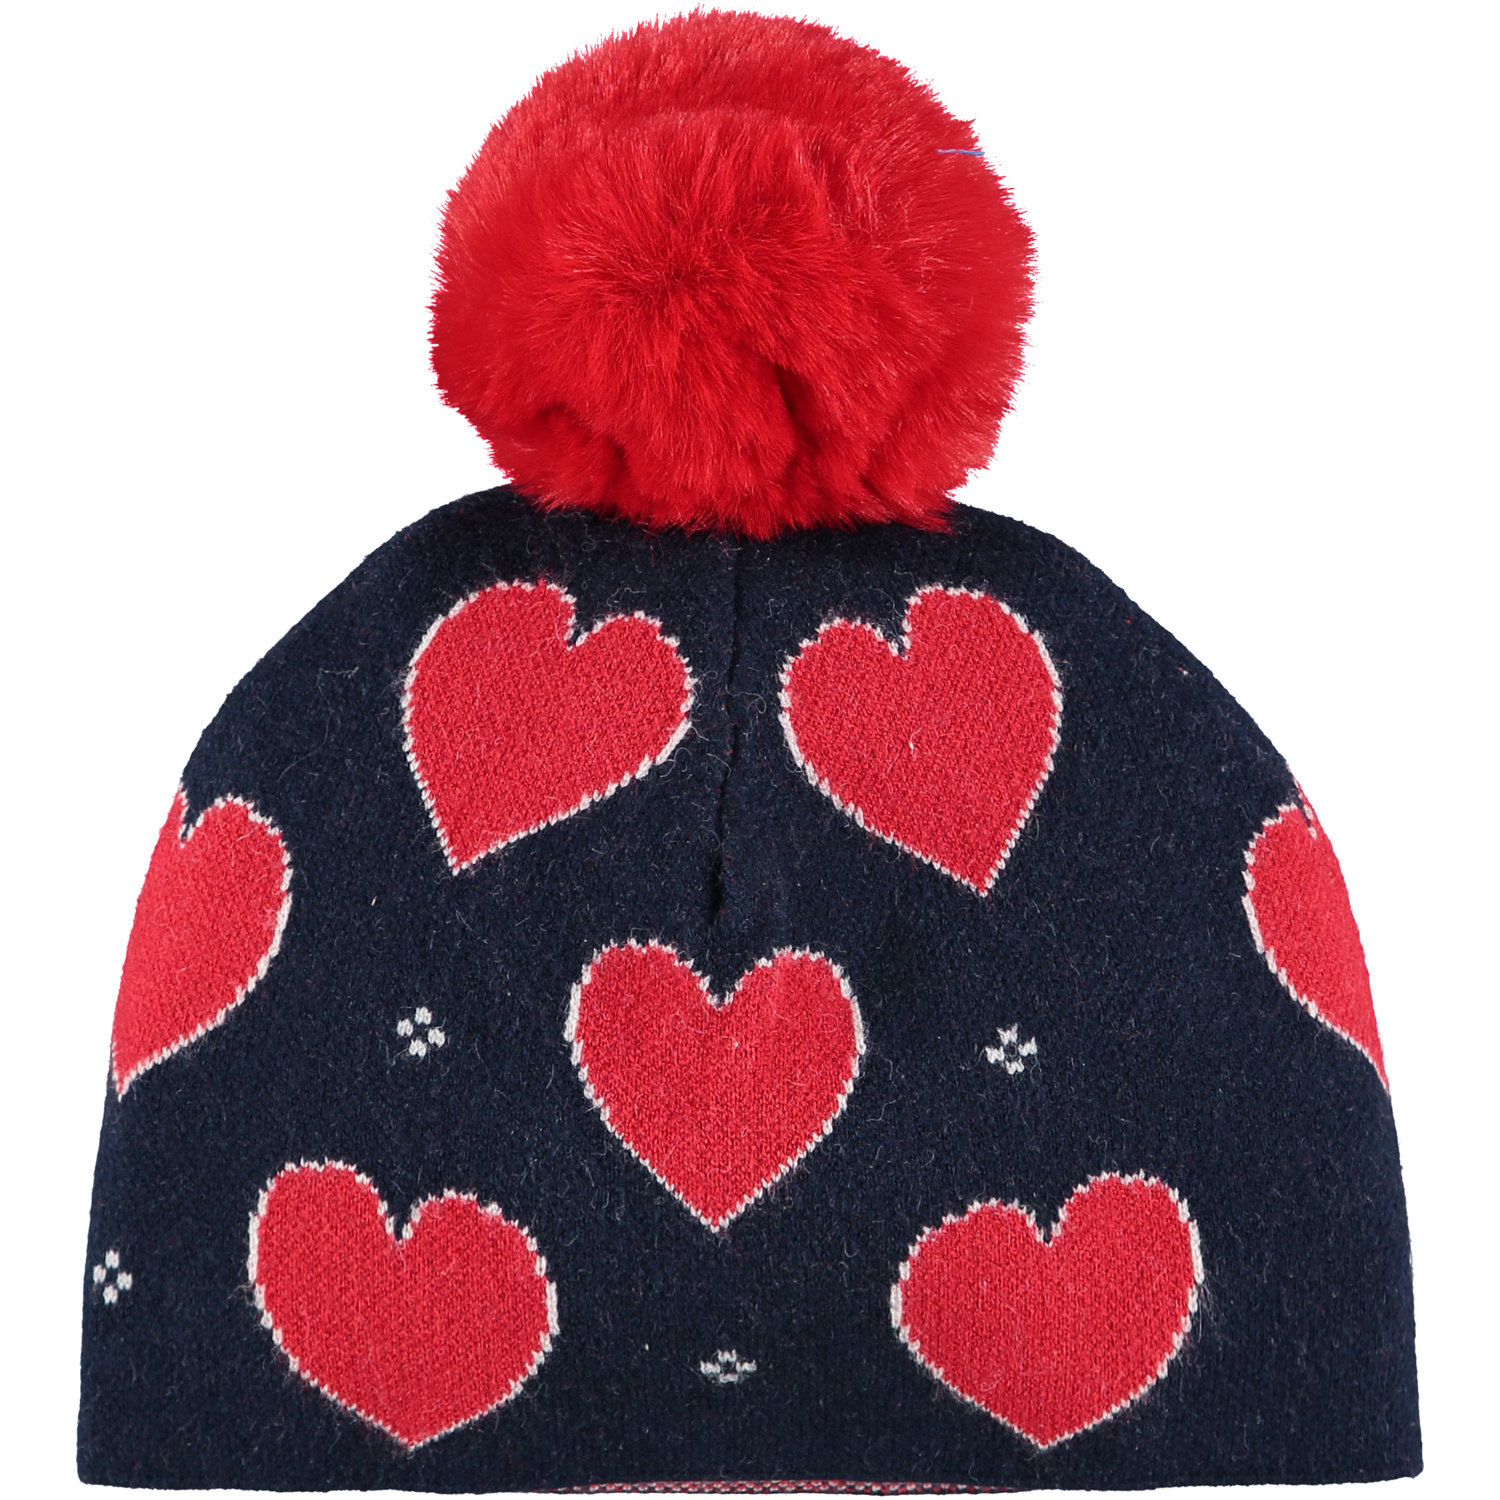 A Dee Adee Robyn Knitted Hat